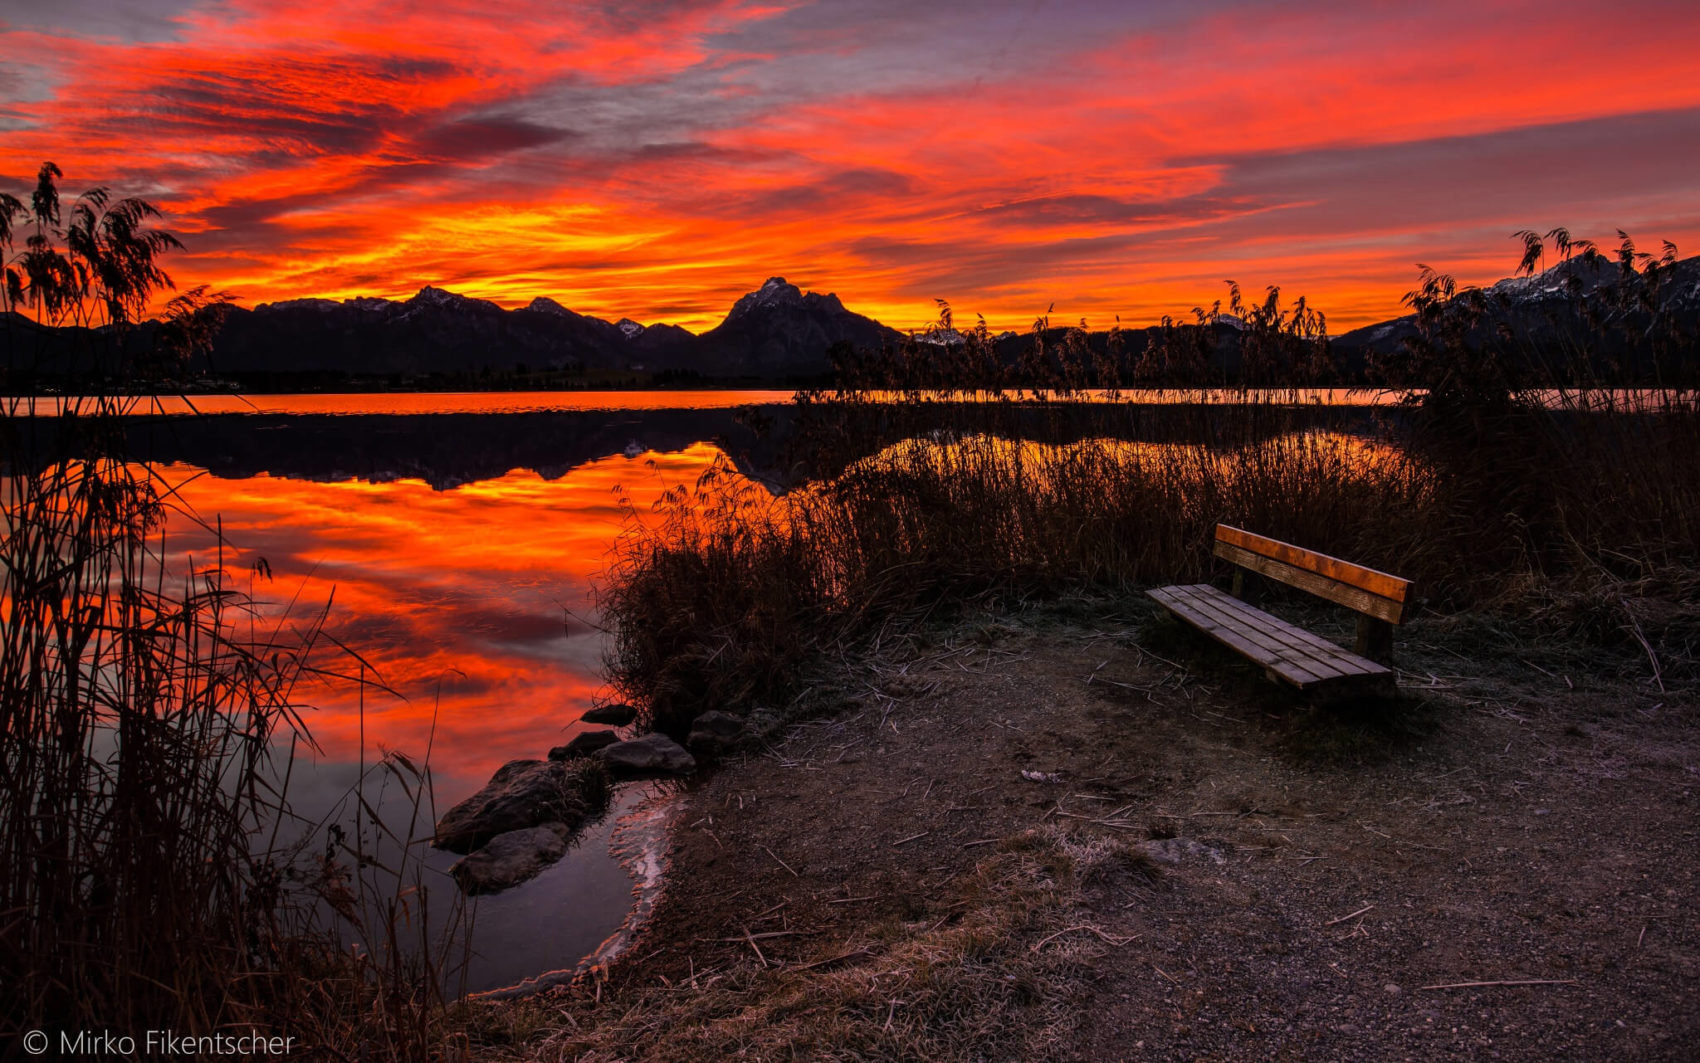 The Beauty of Colorful Landscape Photography